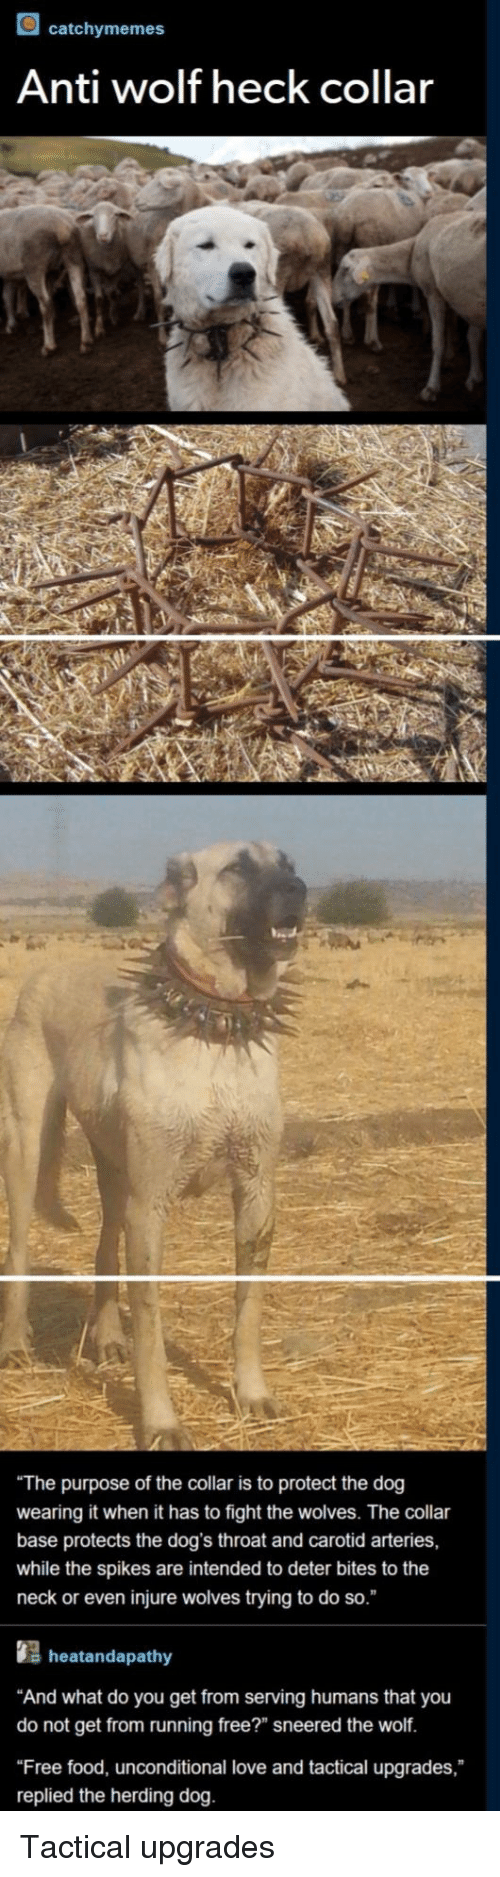 """Tactical: catchymemes  Anti wolf heck collar  The purpose of the collar is to protect the dog  wearing it when it has to fight the wolves. The collar  base protects the dog's throat and carotid arteries,  while the spikes are intended to deter bites to the  neck or even injure wolves trying to do so.  s heatandapathy  And what do you get from serving humans that you  do not get from running free?"""" sneered the wolf.  Free food, unconditional love and tactical upgrades,  replied the herding dog. Tactical upgrades"""